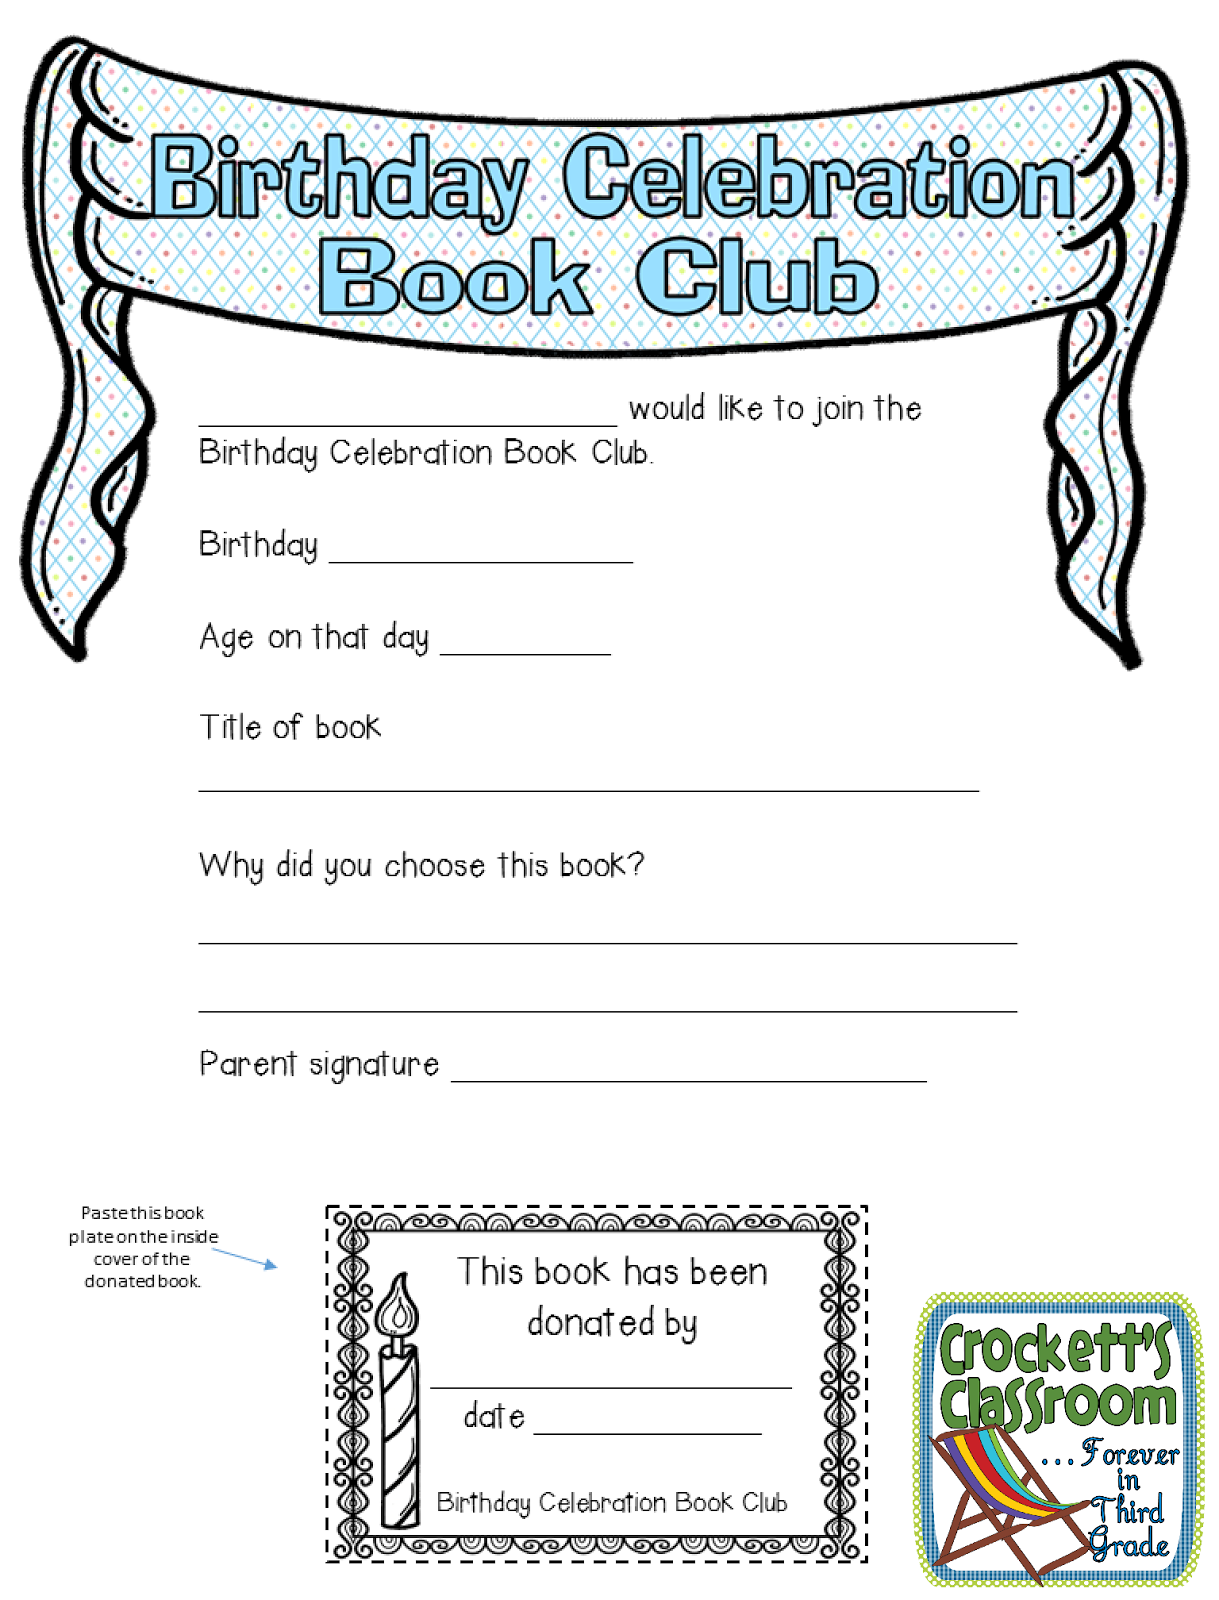 Birthday Celebration Book Club